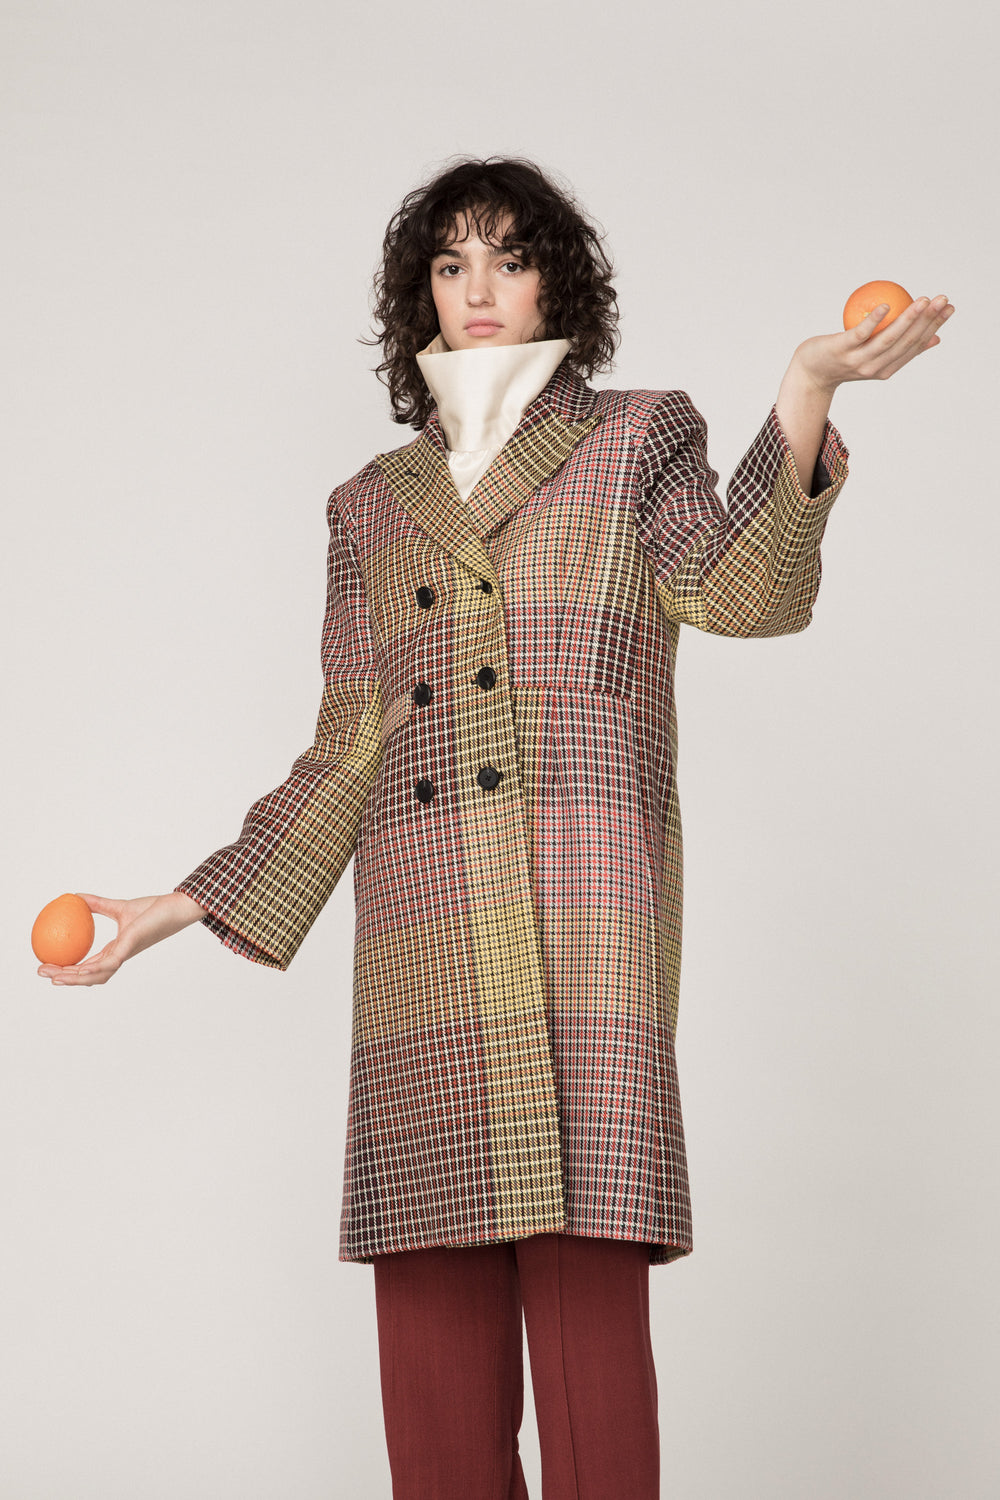 Rosie Assoulin Pre-Fall 2019 Classic Car Coat. Utilitarian double-breasted woven coat. Notched label. 3-button closure. Multicolored plaid. 100% Virgin Wool. Sizes 0 - 12.